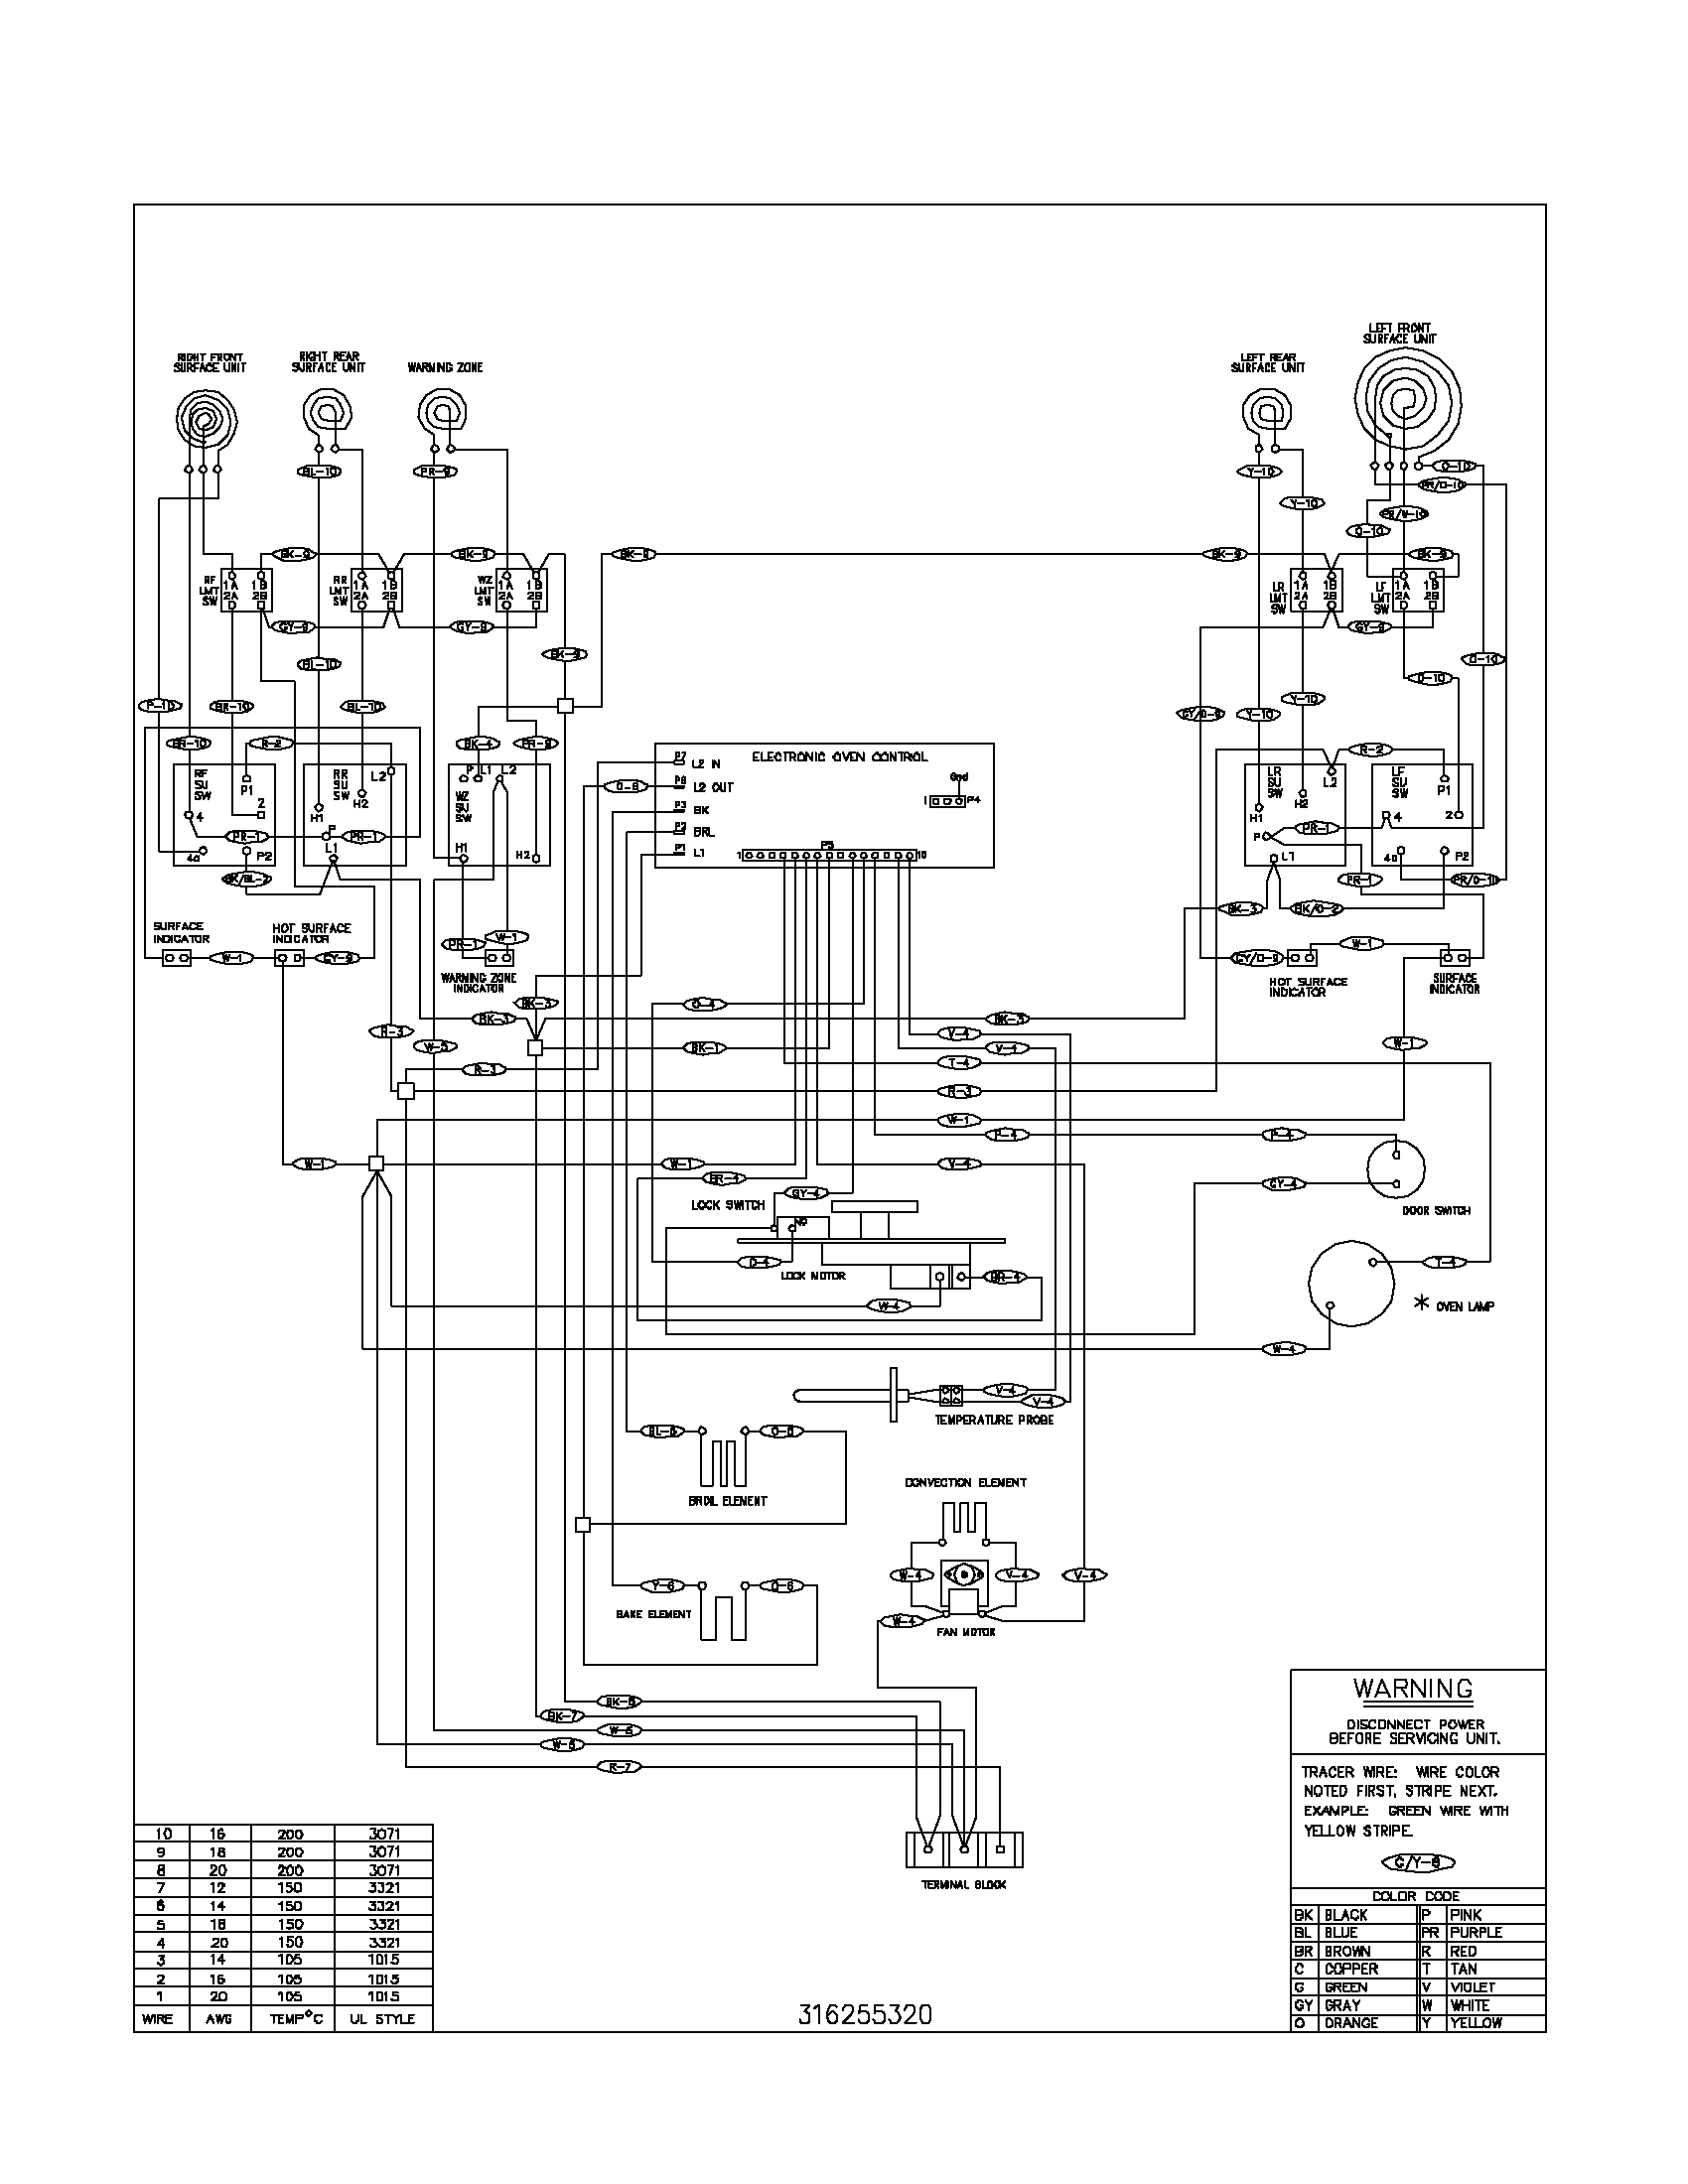 Admiral Cooktop Wiring Diagram - Schema Wiring Diagram Online on frigidaire elec dryer schematic, admiral electric dryer timer, admiral model aed4475tq1 parts, whirlpool dryer electrical schematic, sears dryer schematic, admiral electric dryer manual, roper dryer schematic,